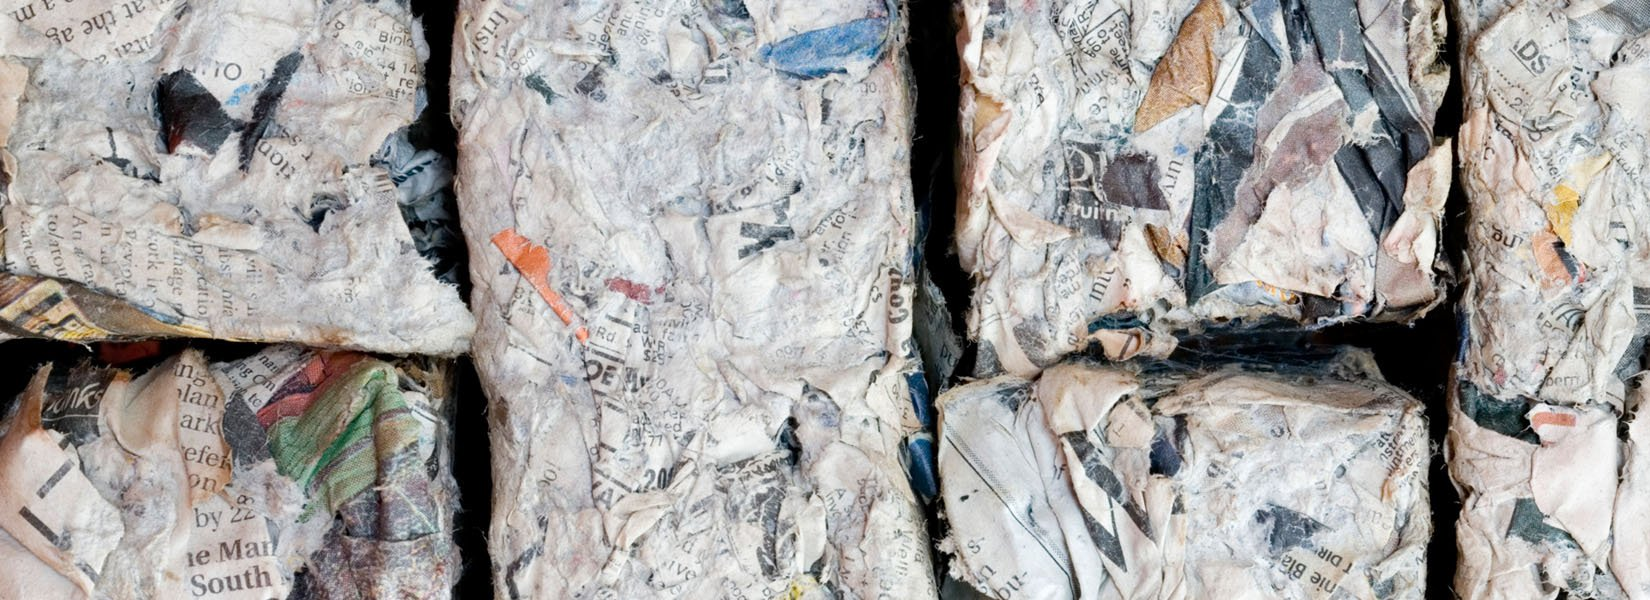 Recycled Paper Myths – Why it matters